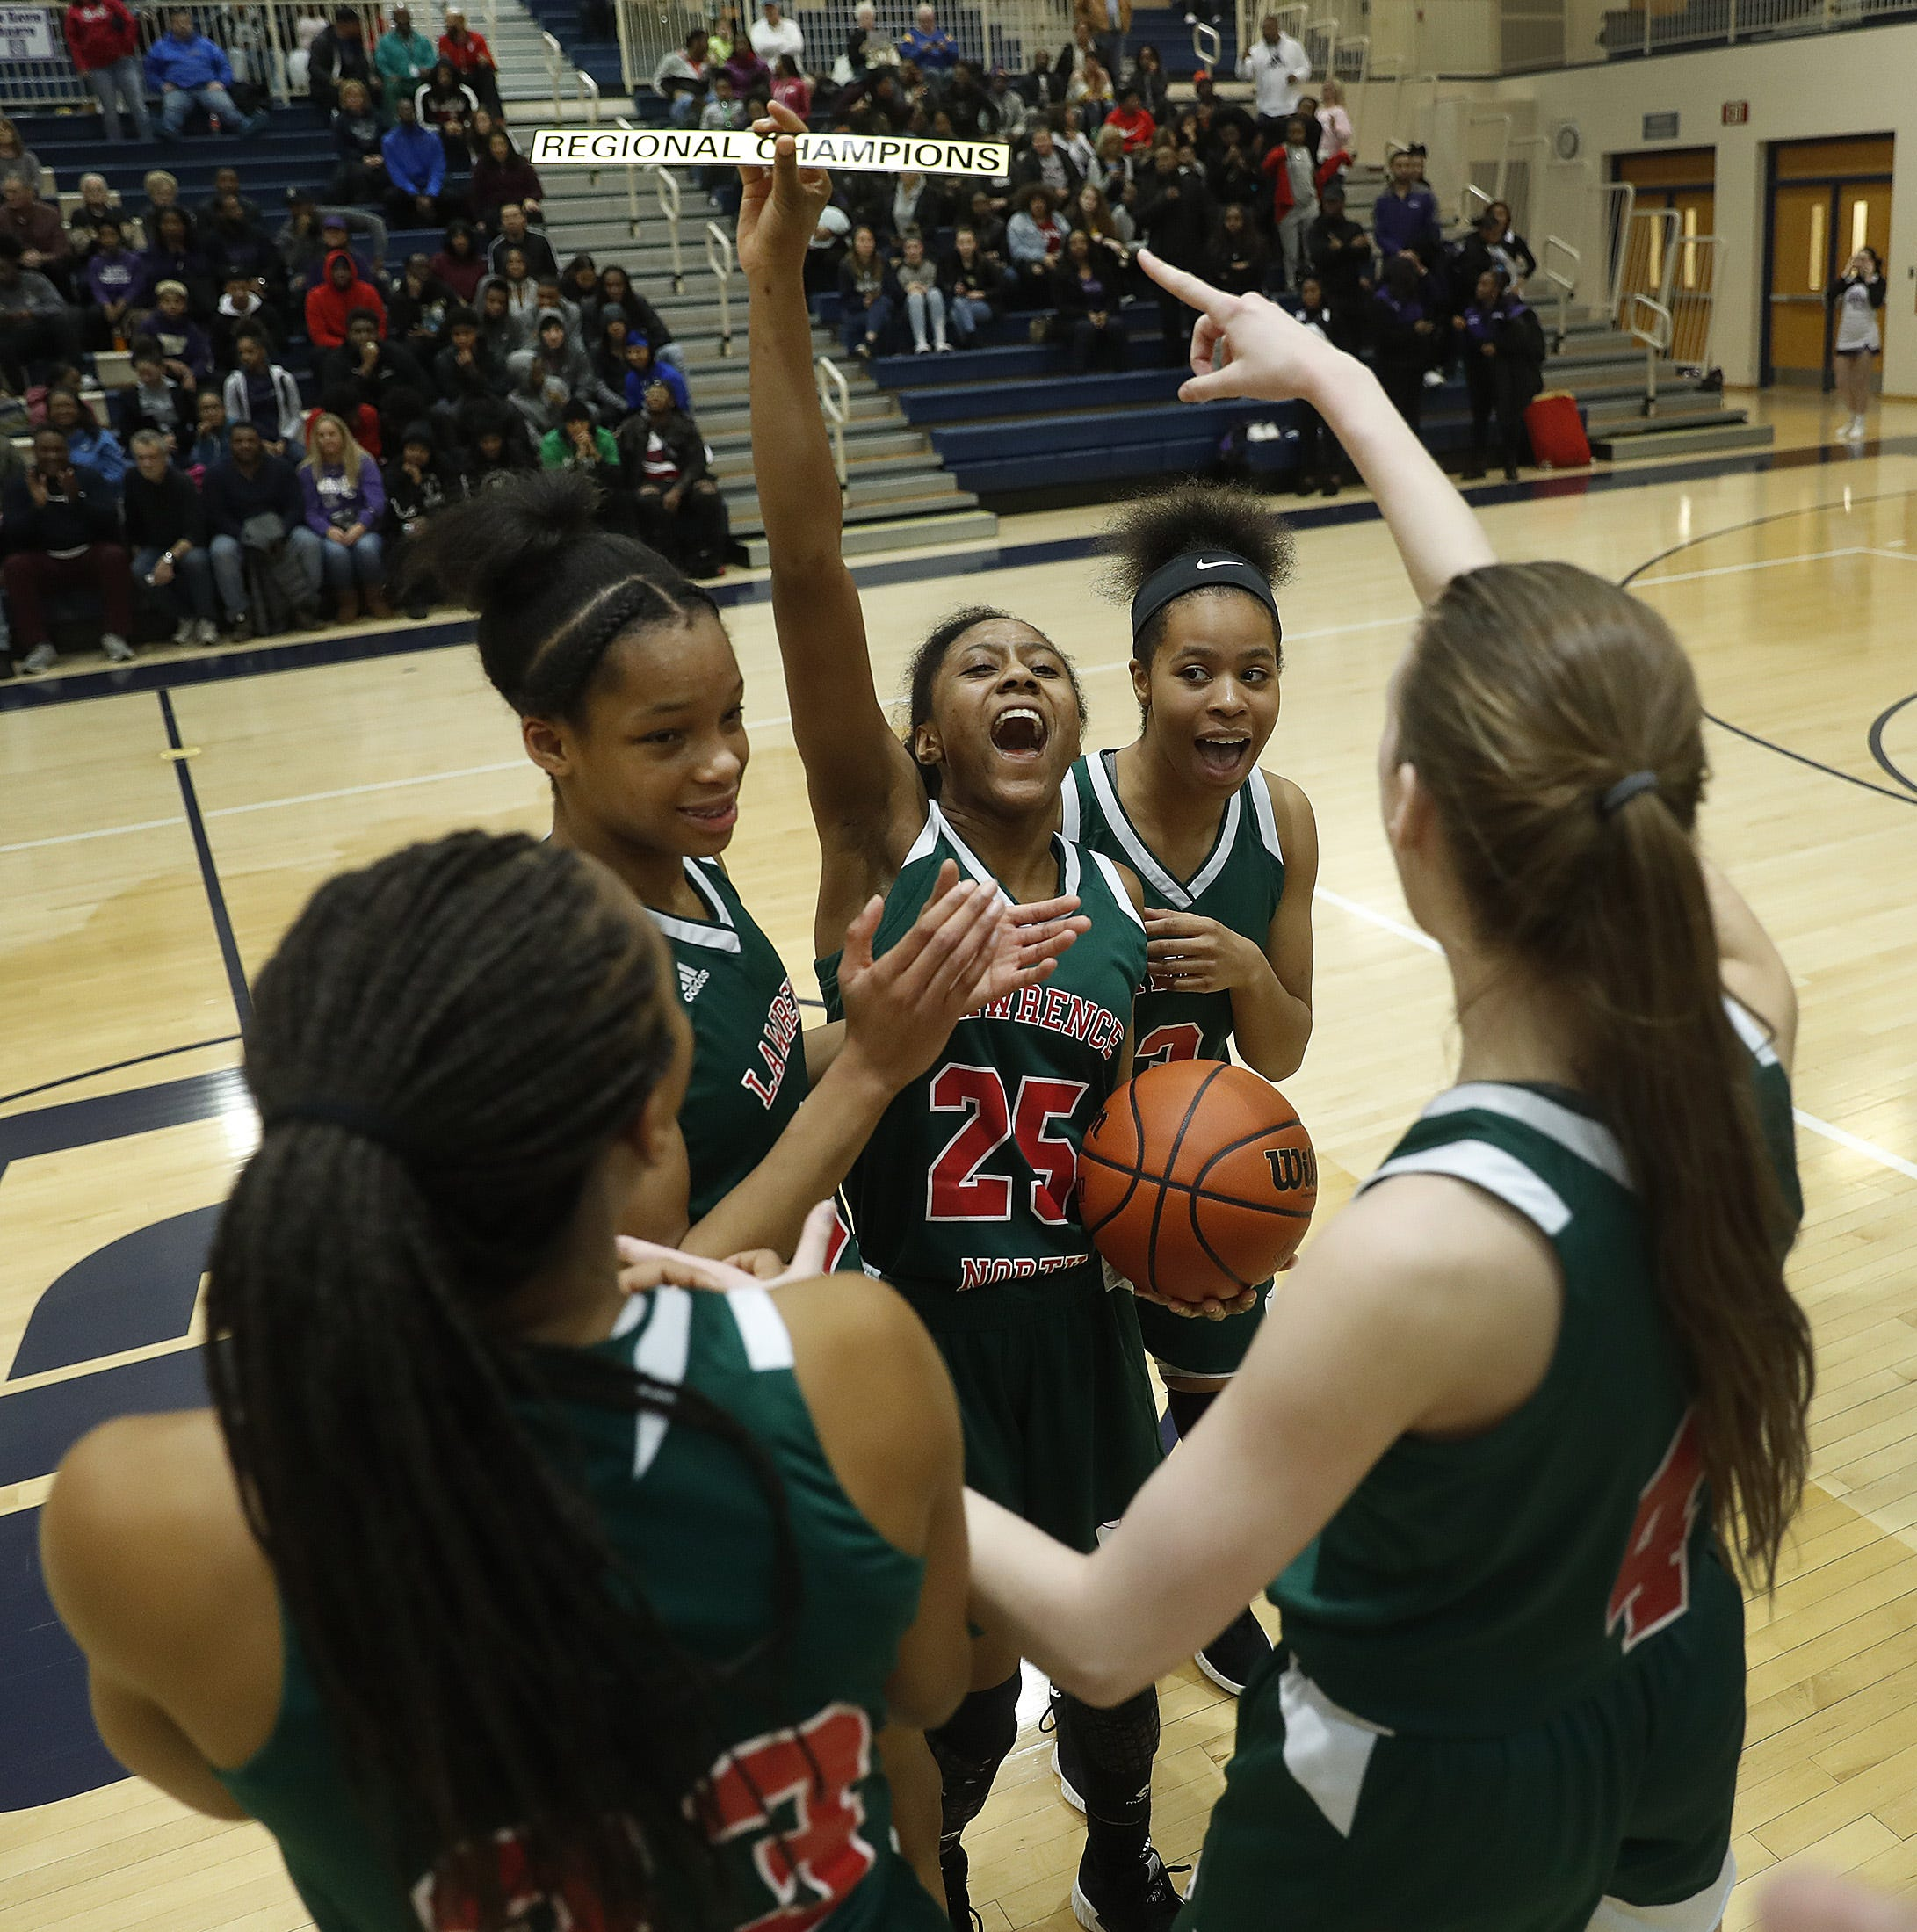 Lawrence North Wildcats Kristian Young (25) holds up the Regional Champions plaque as she celebrates her teammates following their win over the Ben Davis Giants following their IHSAA Regional Championship game at Decatur Central High School on Friday, Feb. 8, 2019. The Lawrence North Wildcats defeated the Ben Davis Giants  60-46.